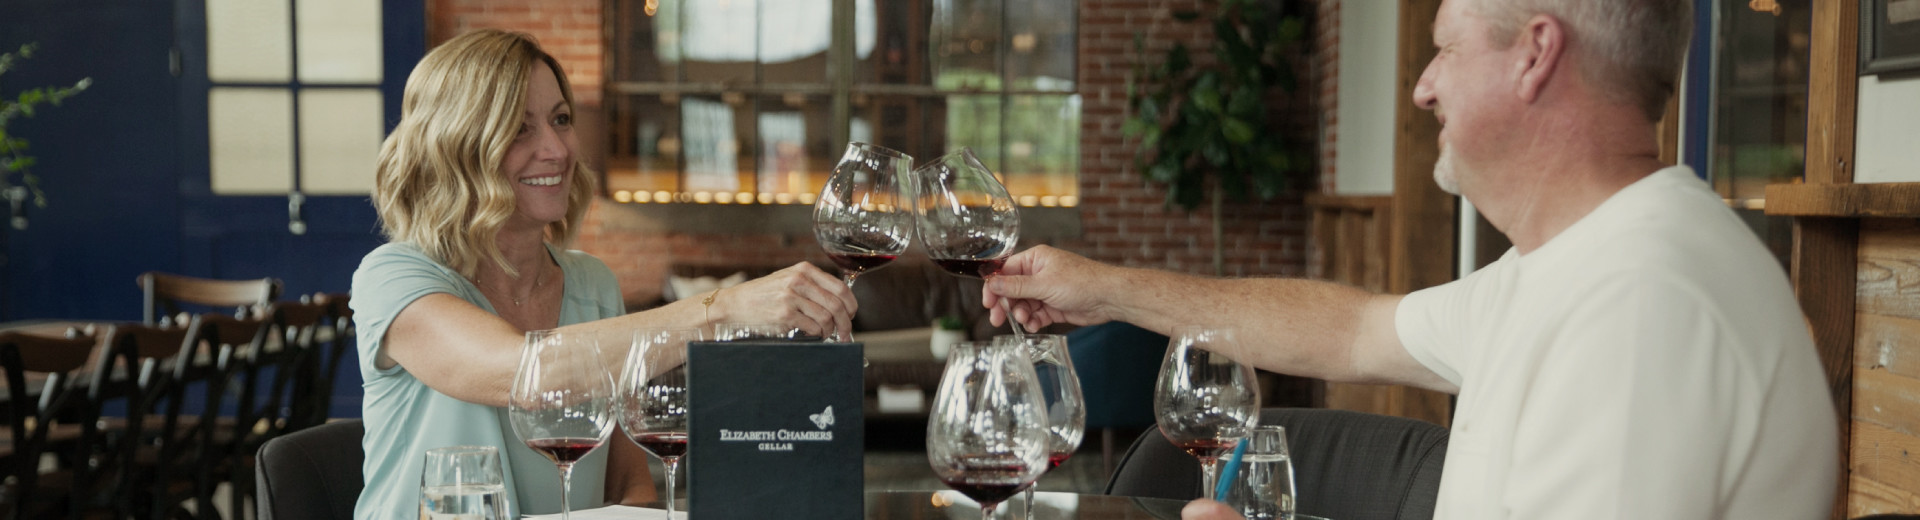 Atticus Hotel guests enjoy a Pinot noir flight at Elizabeth Chambers Cellar in McMinnville, Oregon.